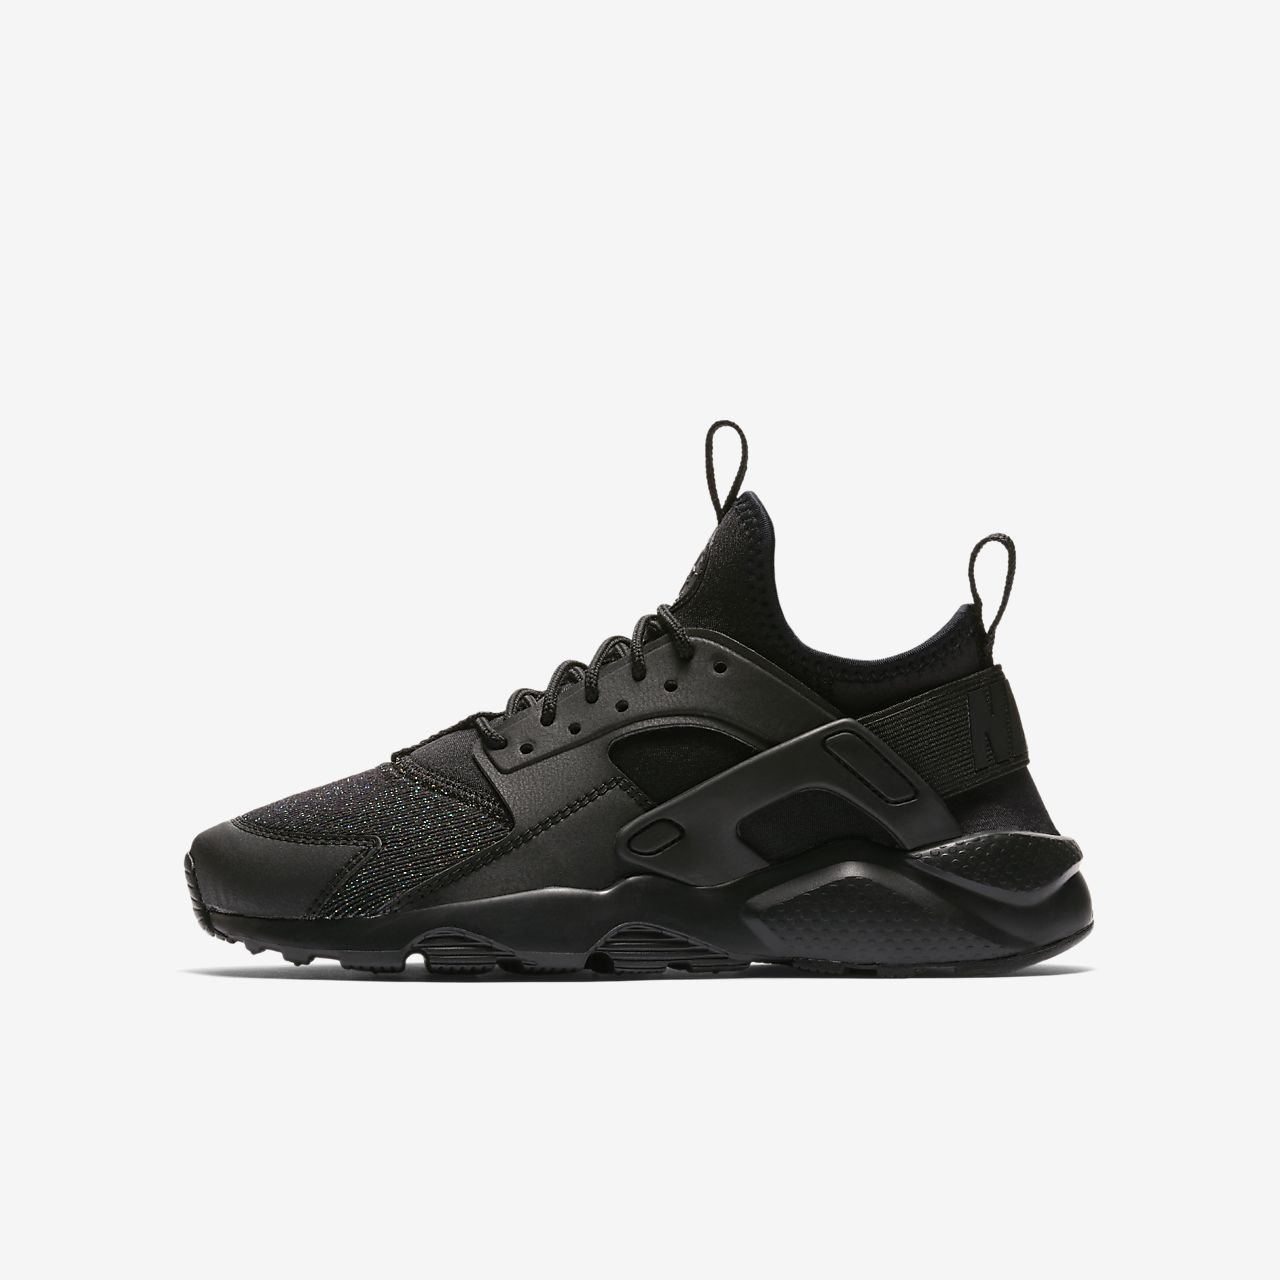 Nike Air Huarache Run Ultra SE (GS) 大童运动童鞋